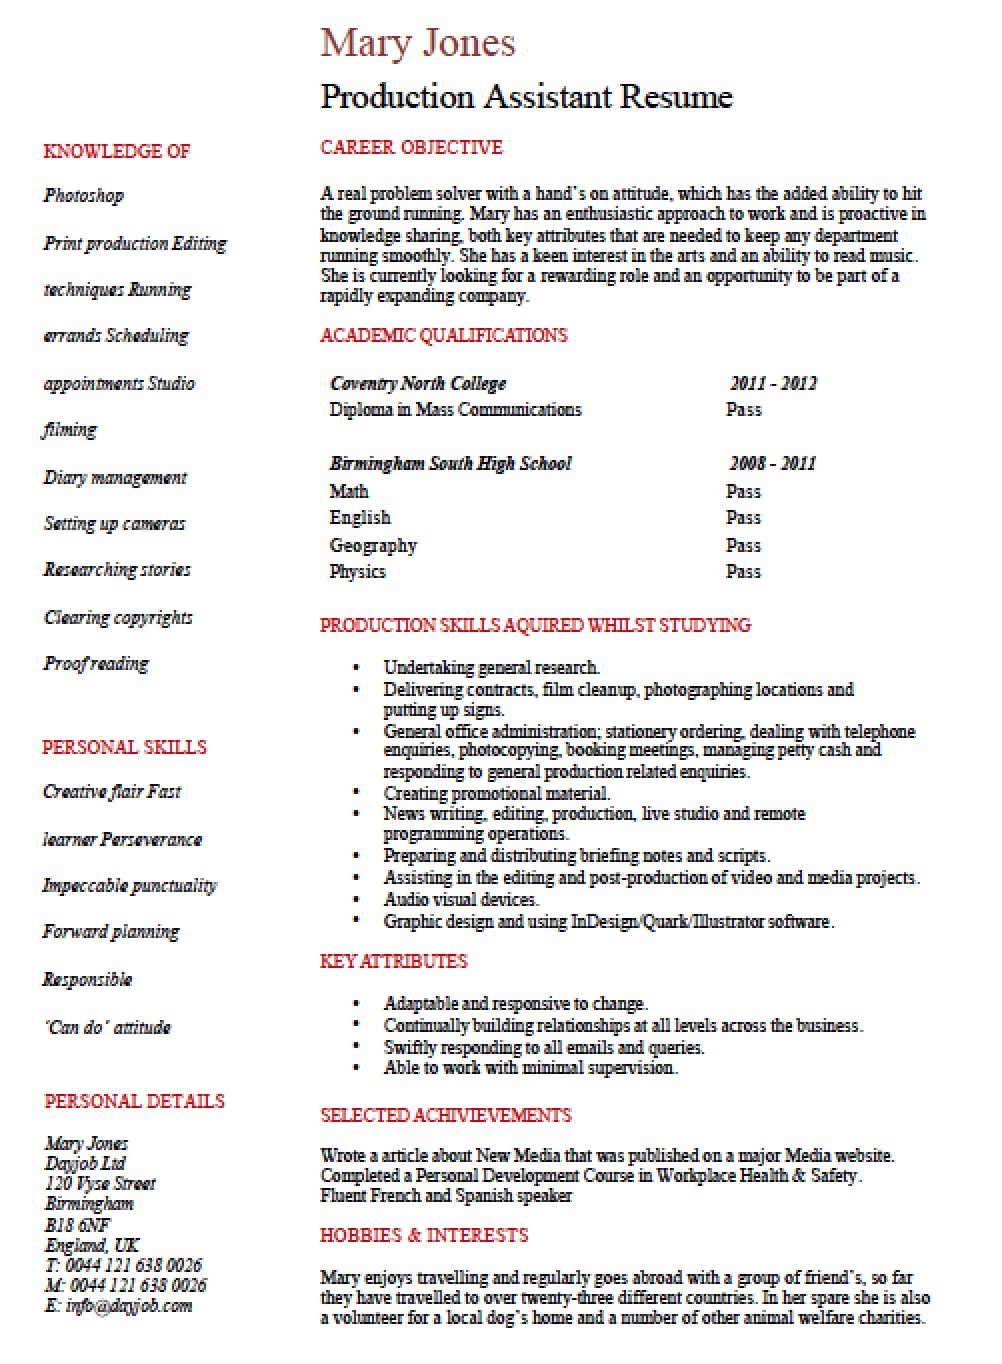 resume Resume Entry Level free entry level production assistant resume template sample ms word adobe pdf rich text rtf microsoft word